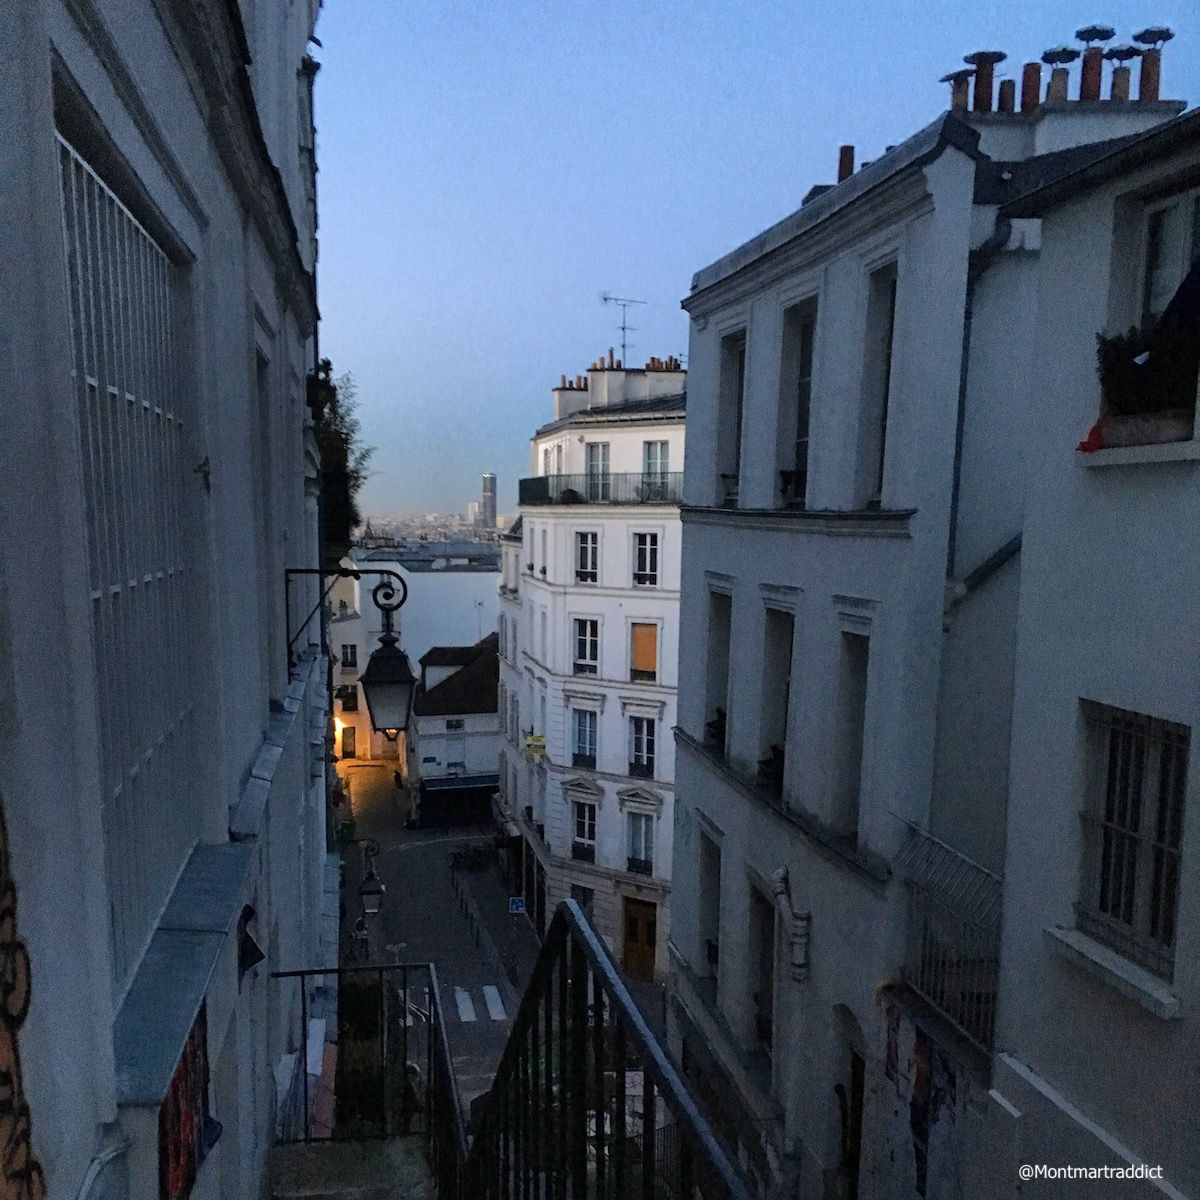 04. Early morning in Montmartre, 75018